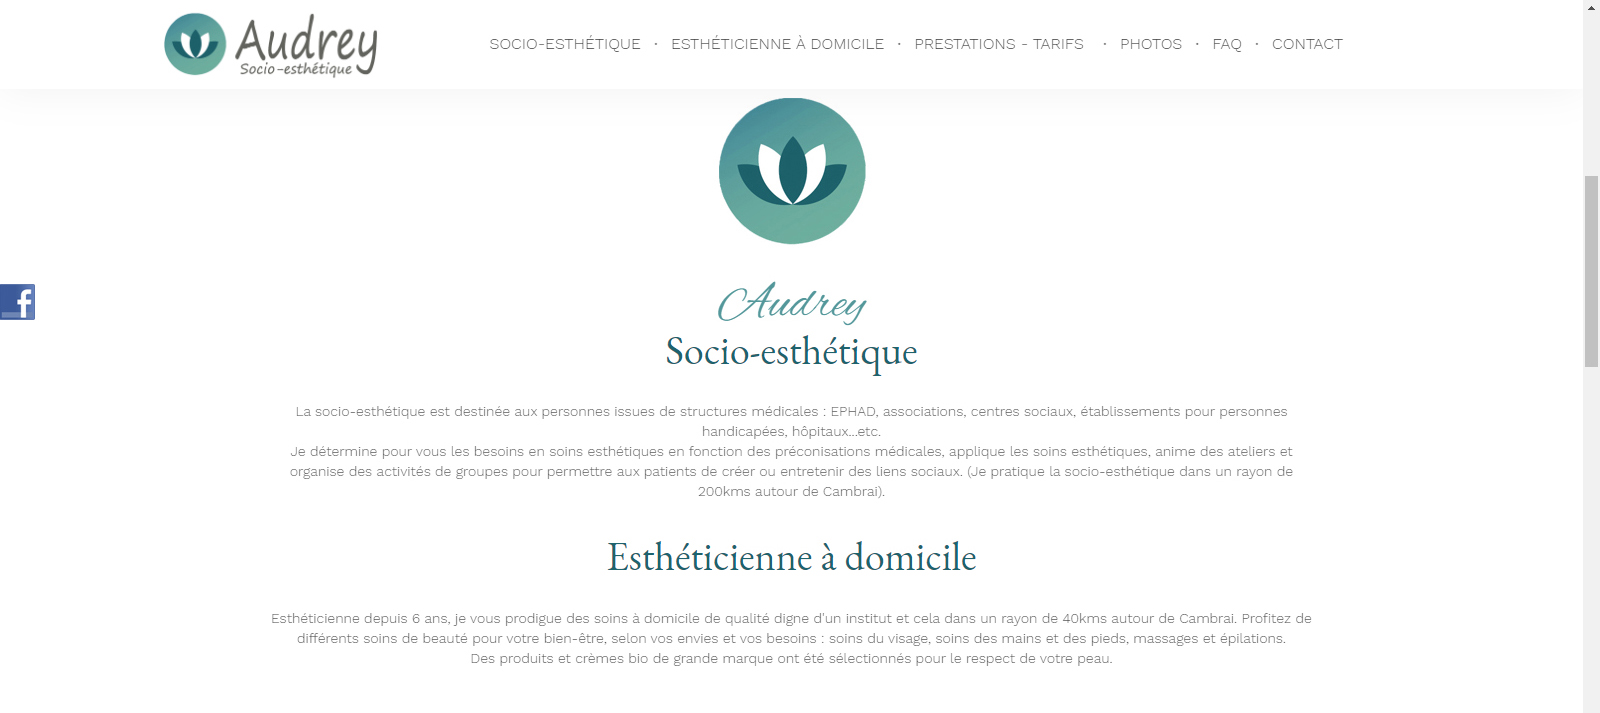 audrey-socio-esthetique-screen5